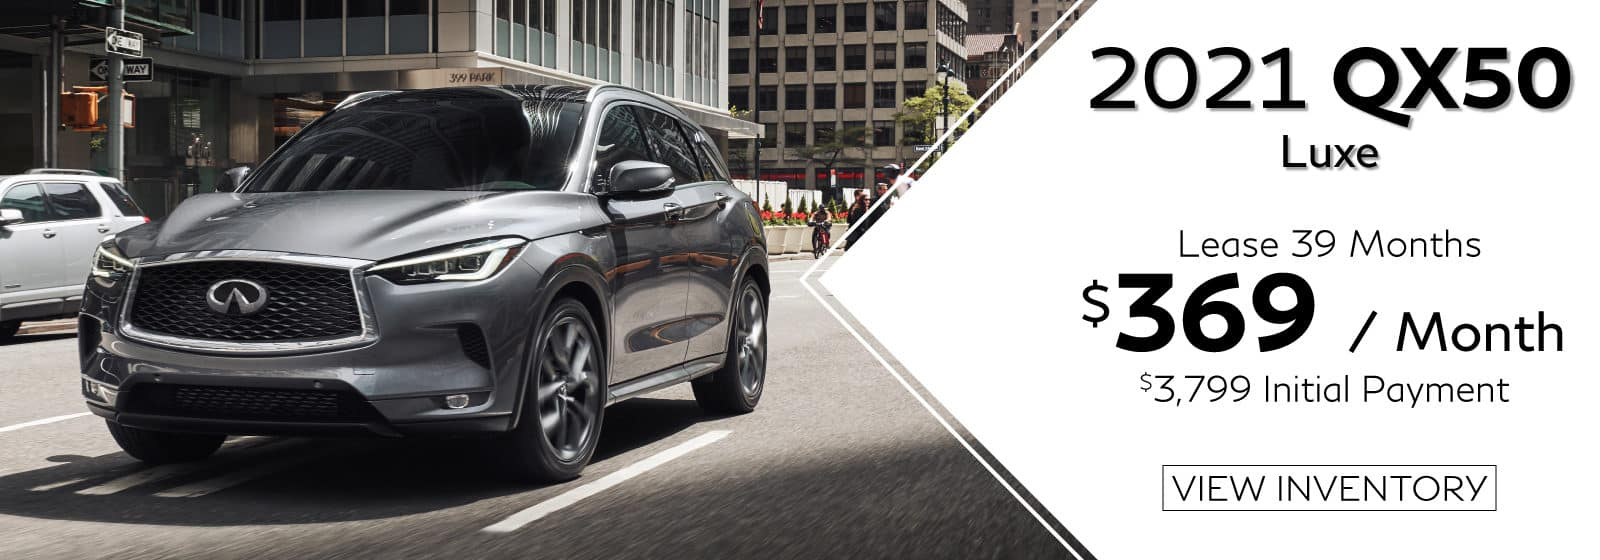 VIN 3PCAJ5BA1MF101933. Well-qualified lessees lease a new 2021 QX50 LUXE in retailer stock for $369/Month for 39 months. $3,799 initial payment excludes taxes, title, and license. $3,799 due at lease signing (includes down payment). Offer valid only when financed through INFINITI Financial Services. Subject to residency restrictions. $42,525 MSRP includes destination and handling charge. Net capitalized cost of $34,088 includes a $700 non-refundable acquisition fee. Retailer contribution may affect actual price set by retailer. Monthly payments total $14,391 at lease end, purchase for $23,389, plus purchase option fee up to $300 (except KS & WI), plus tax, or pay excess wear & use plus $0.25 per mile for mileage over 10,000 miles per year. Disposition fee due at lease end. No security deposit required. Must take delivery from new retailer stock. Photo for illustration purposes only. Ends 04/30/2021.